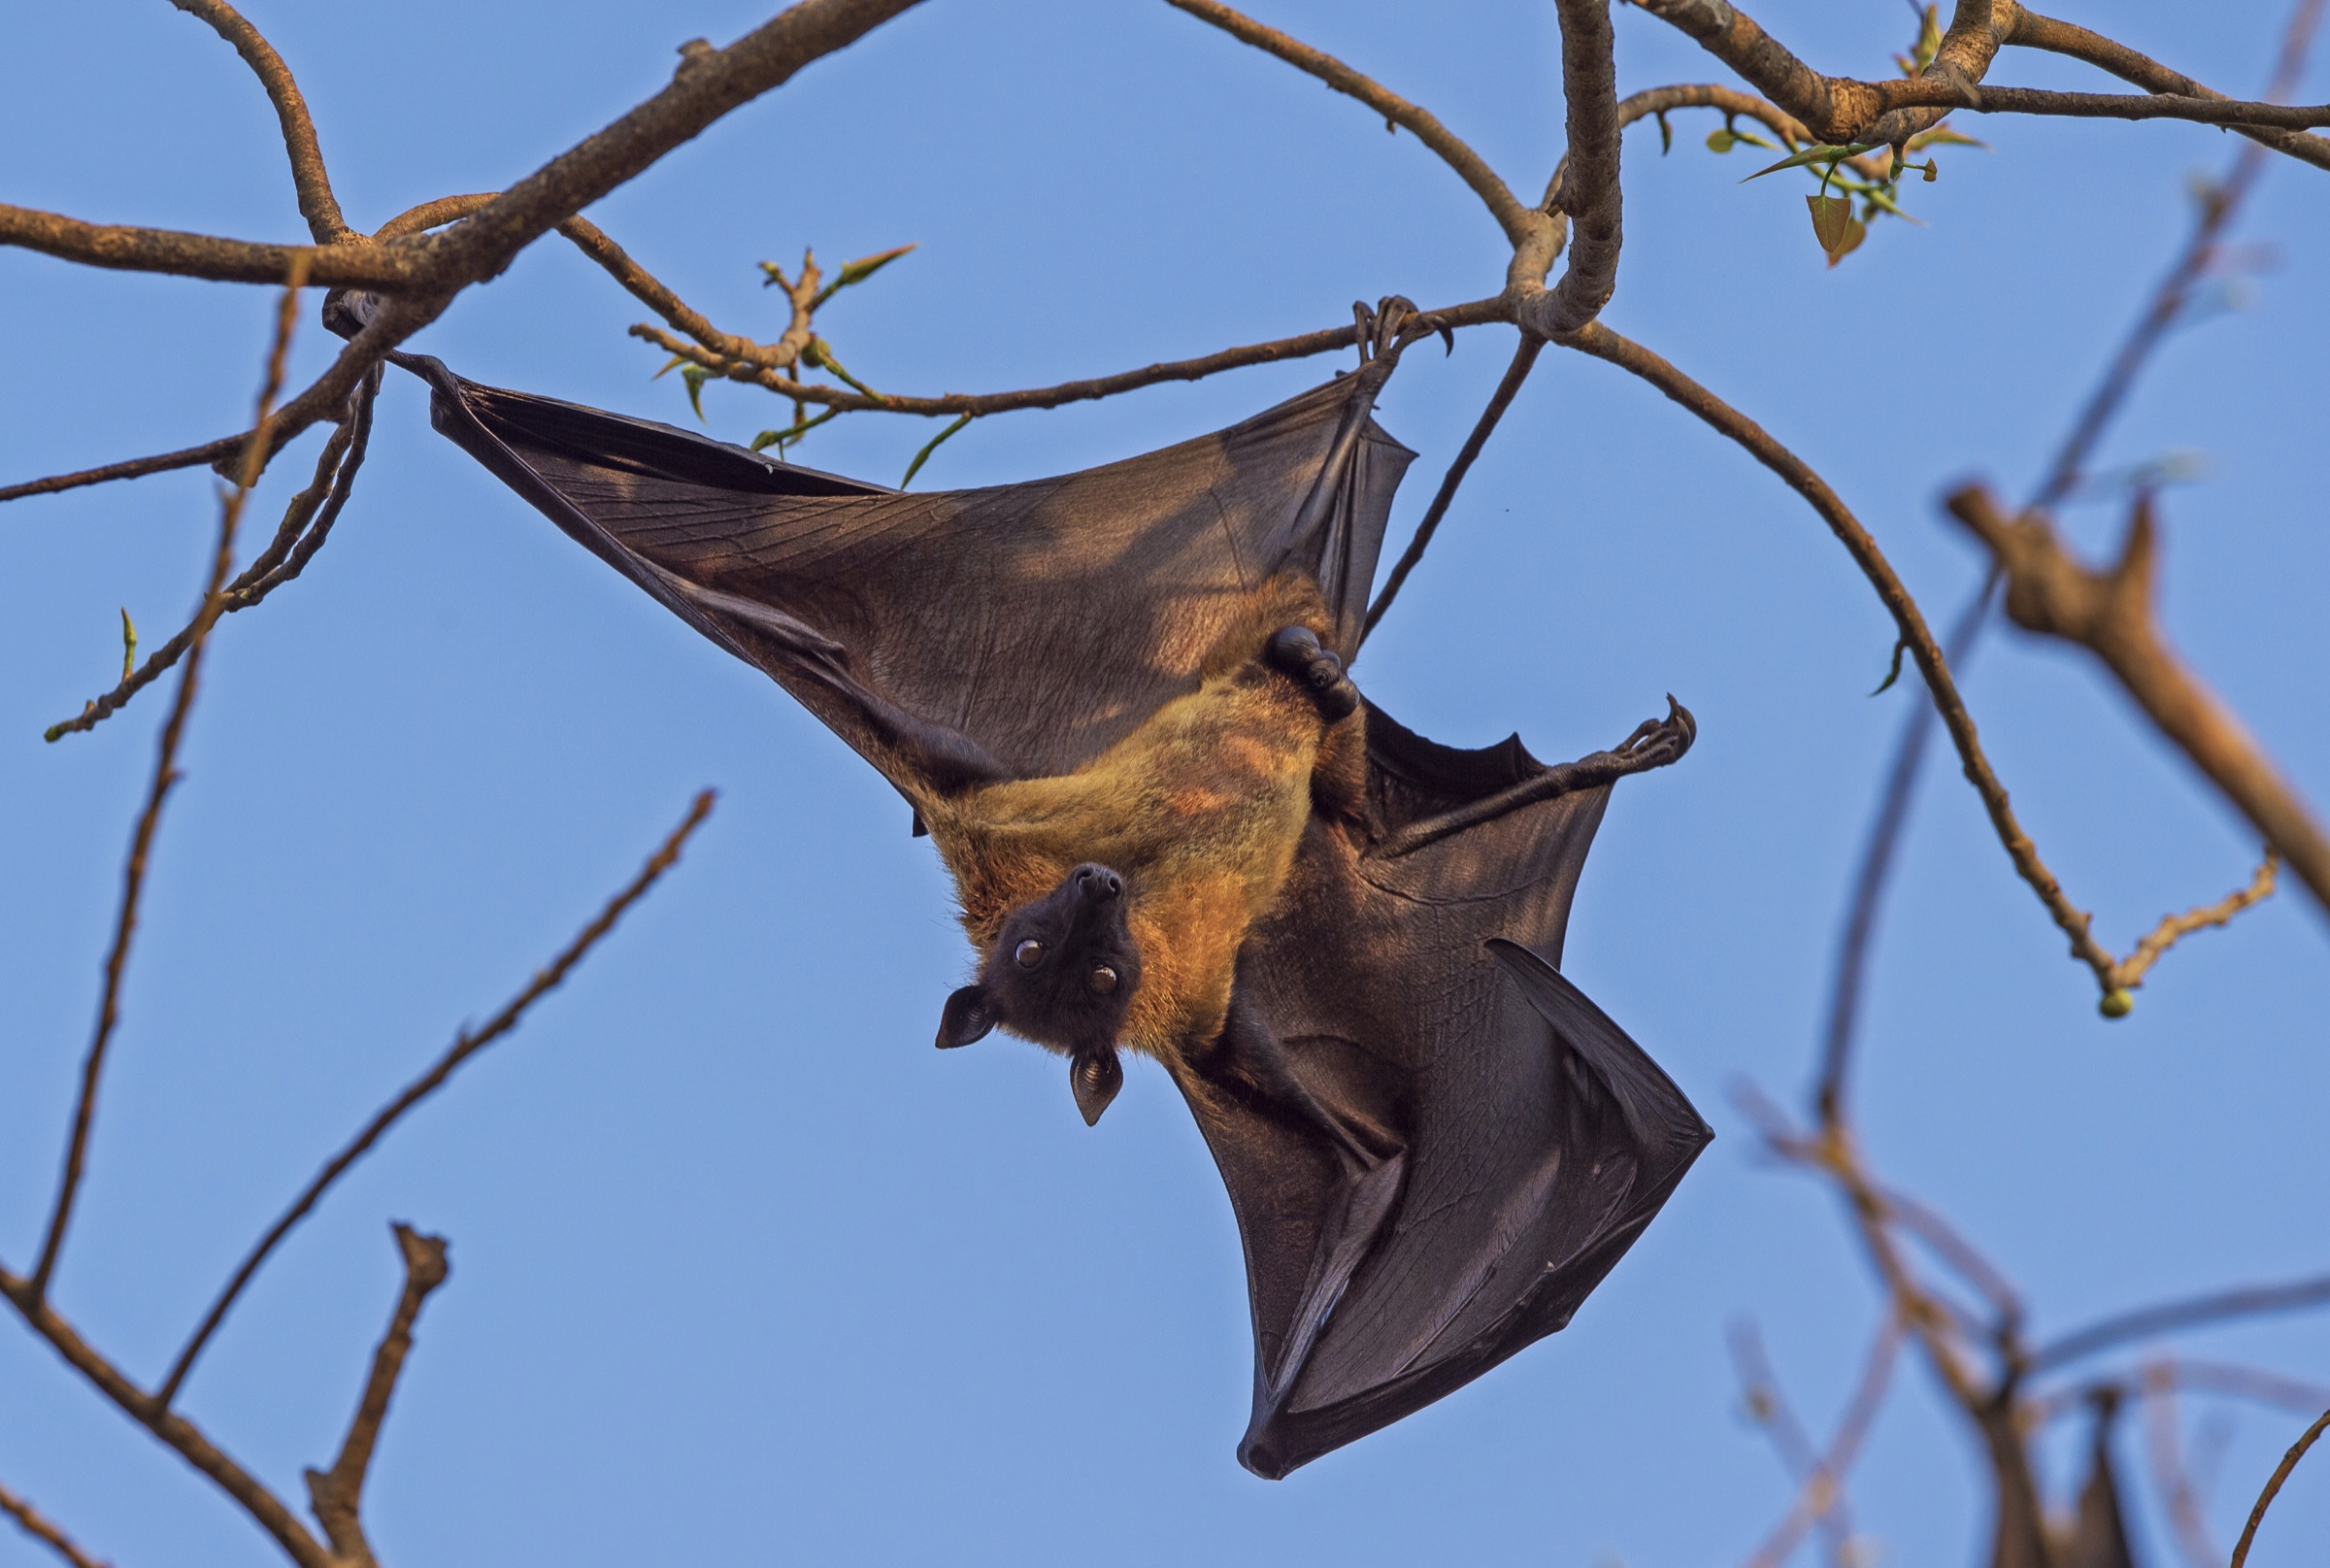 An Indian flying fox (<em>Pteropus medius</em>), a fruit bat native to Bangladesh and India, dangles from a perch in the roost tree where it will spend the day before going off to forage when the sun sets. Photograph by Dhritiman Mukherjee